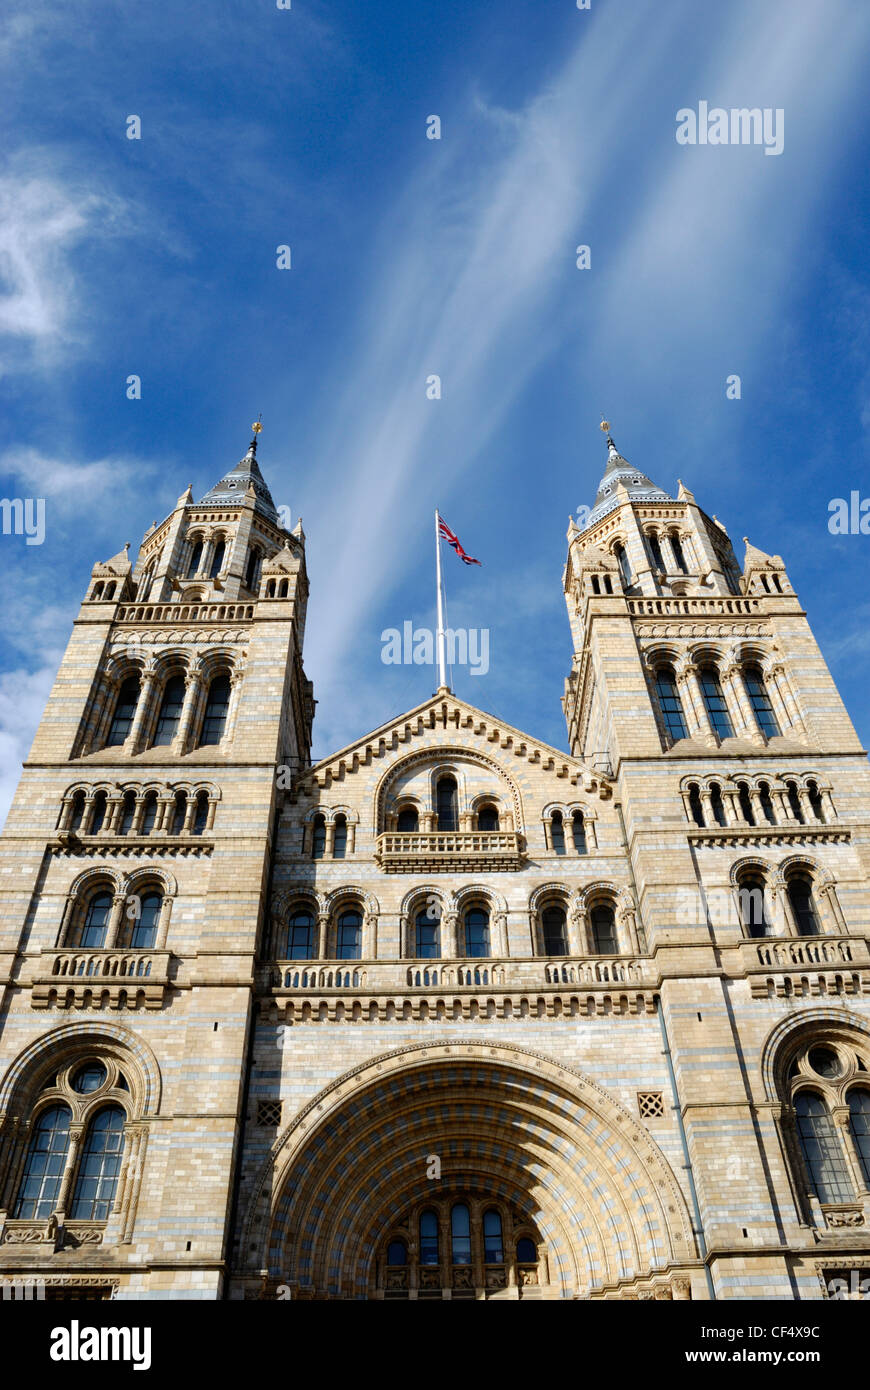 The Cromwell Road entrance to the Natural History Museum in London. Stock Photo